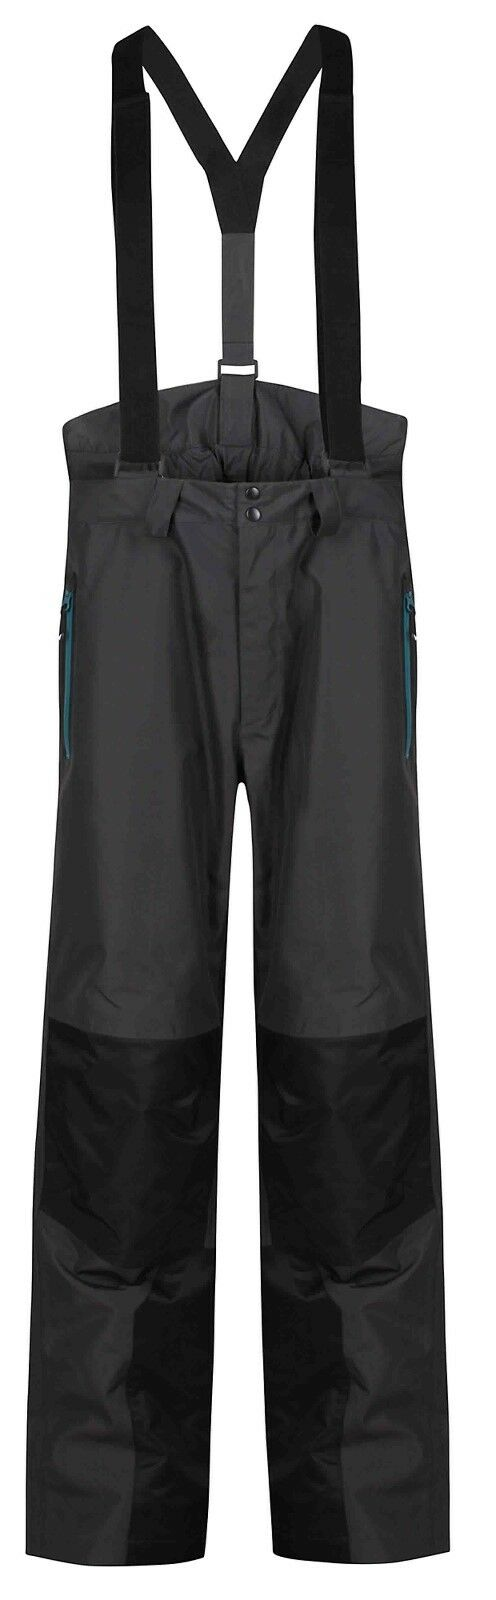 Greys New 2018 All weather Waterproof Over-Trousers Boat Angling & Fly Fishing